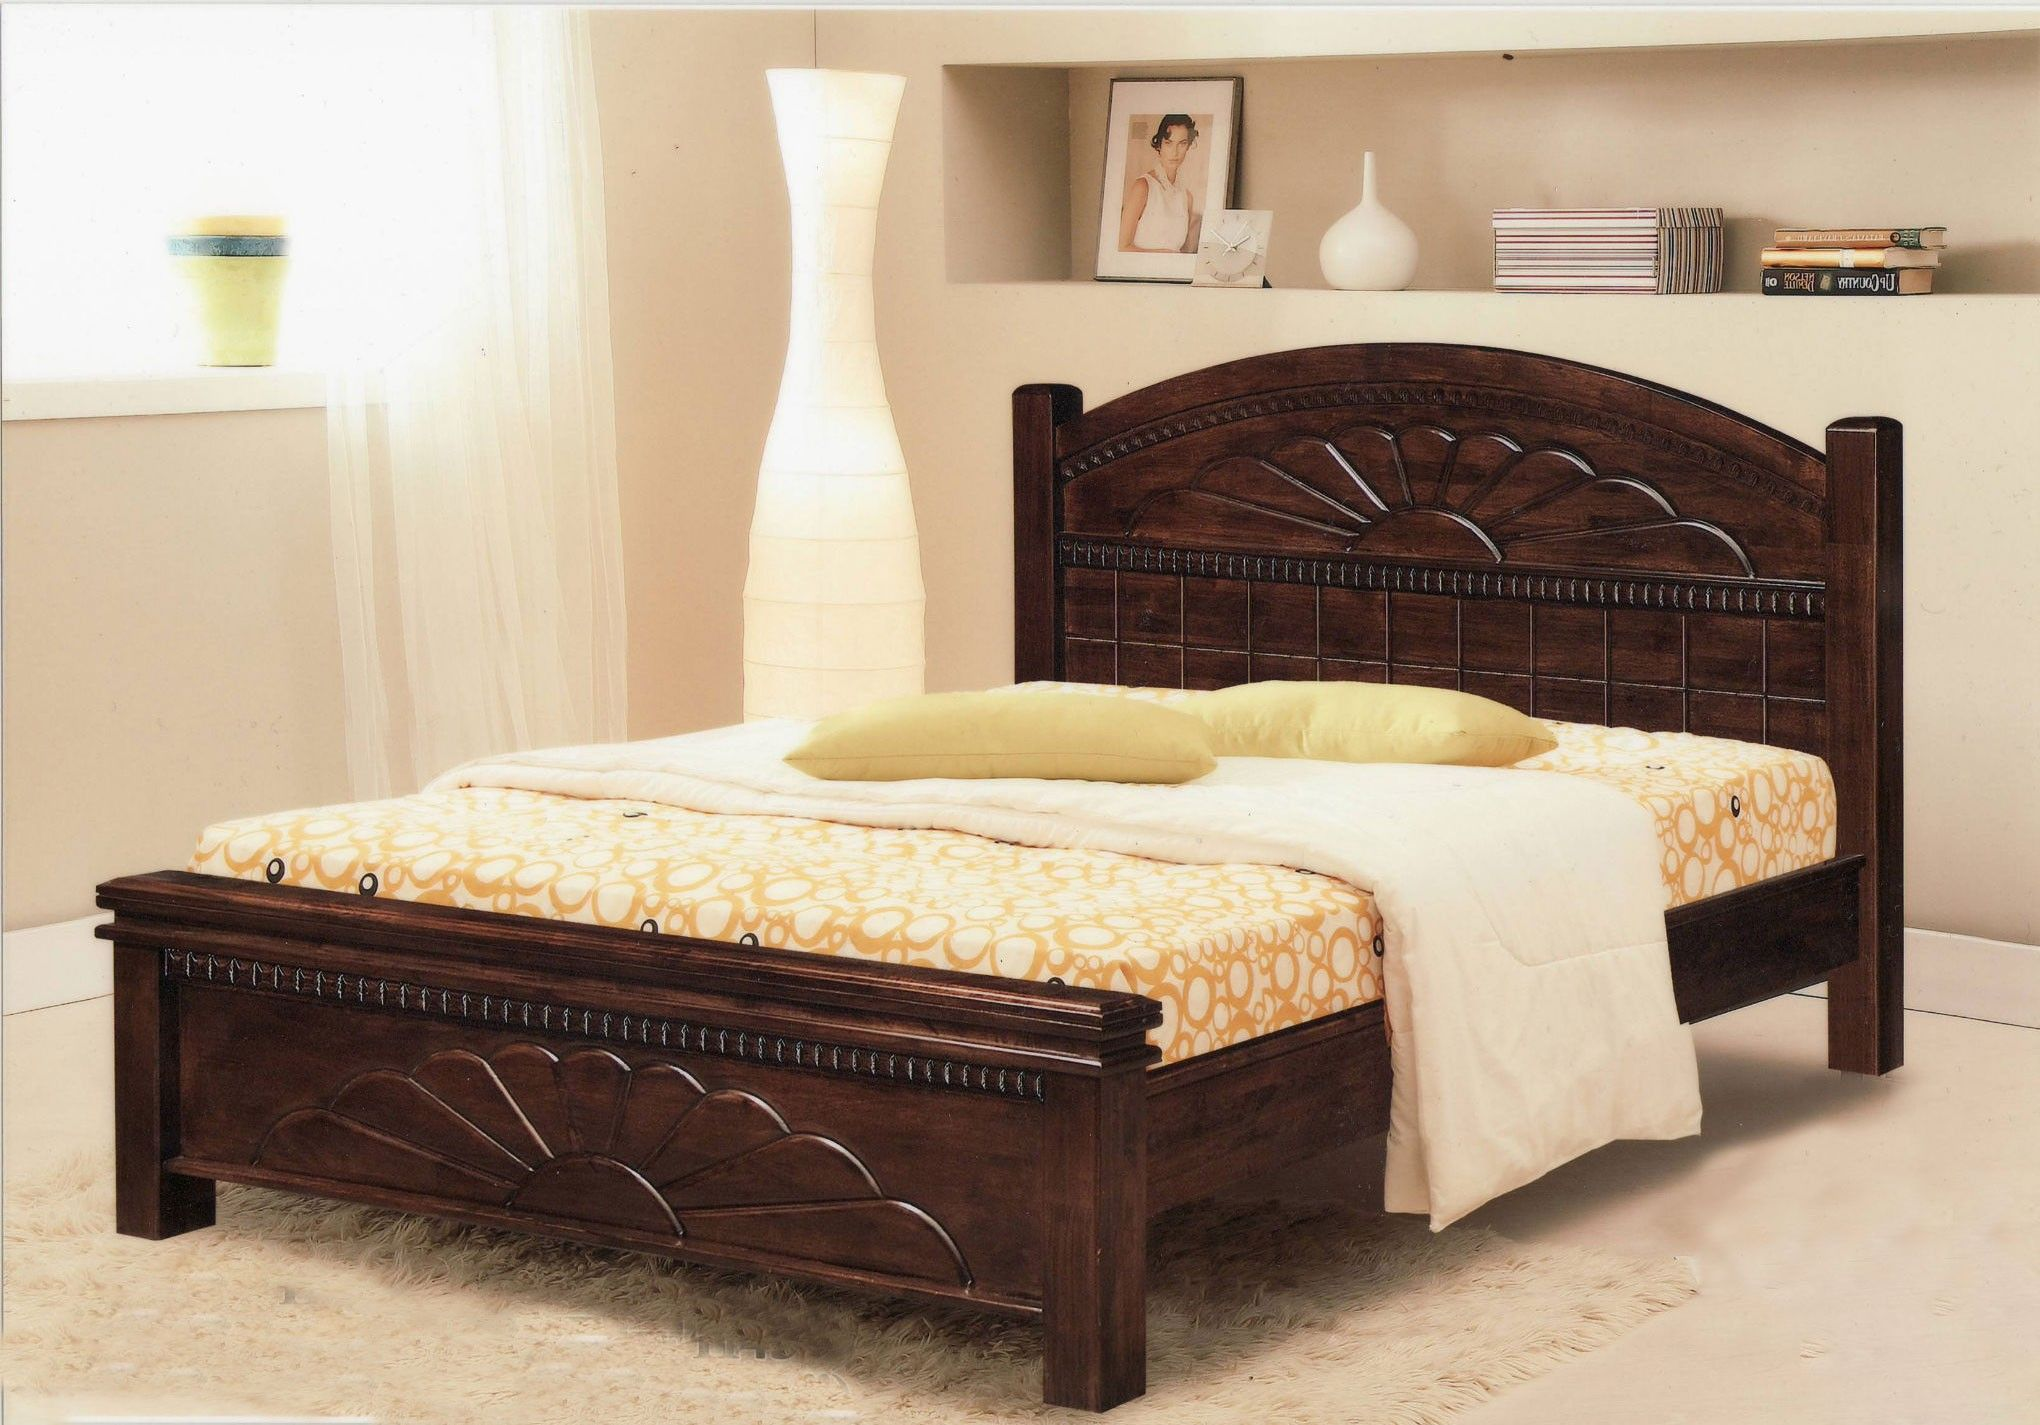 A queen wooden bed! My dream bed! I wish to get one really